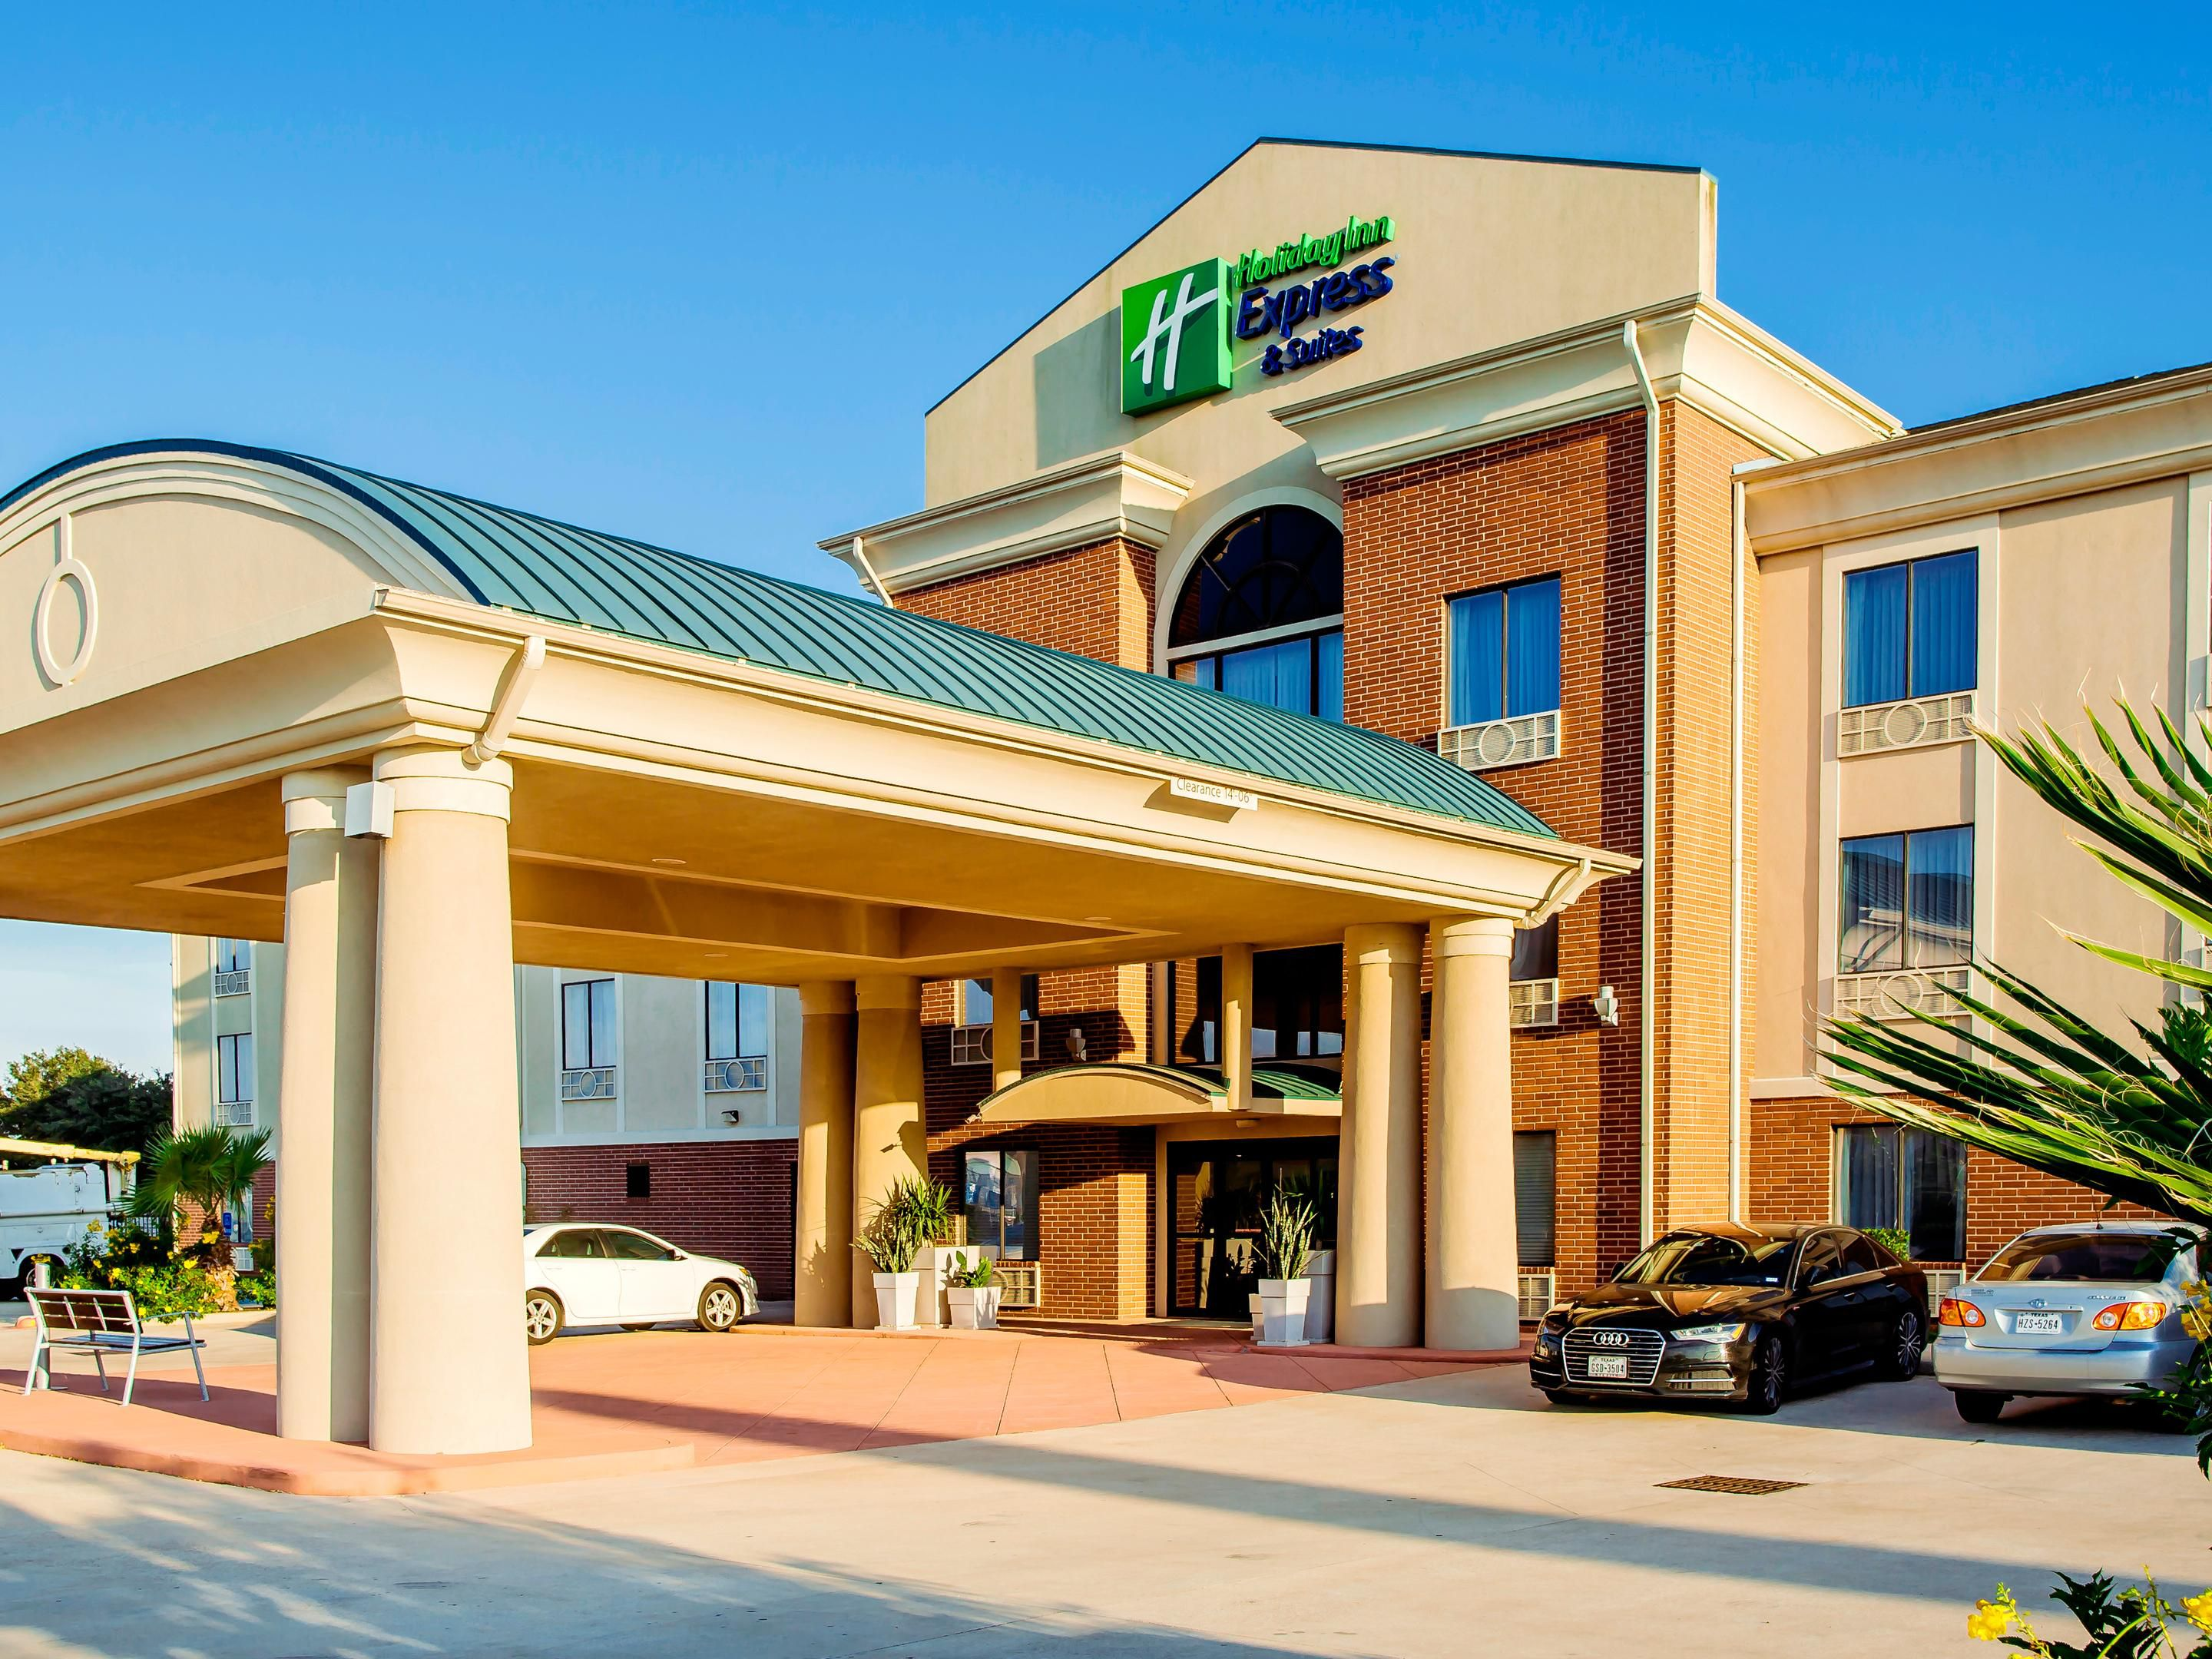 central us holiday suites hotels inn by en hoteldetail northeast dallas and holidayinnexpress express college hotel park near dalvp ihg bentley